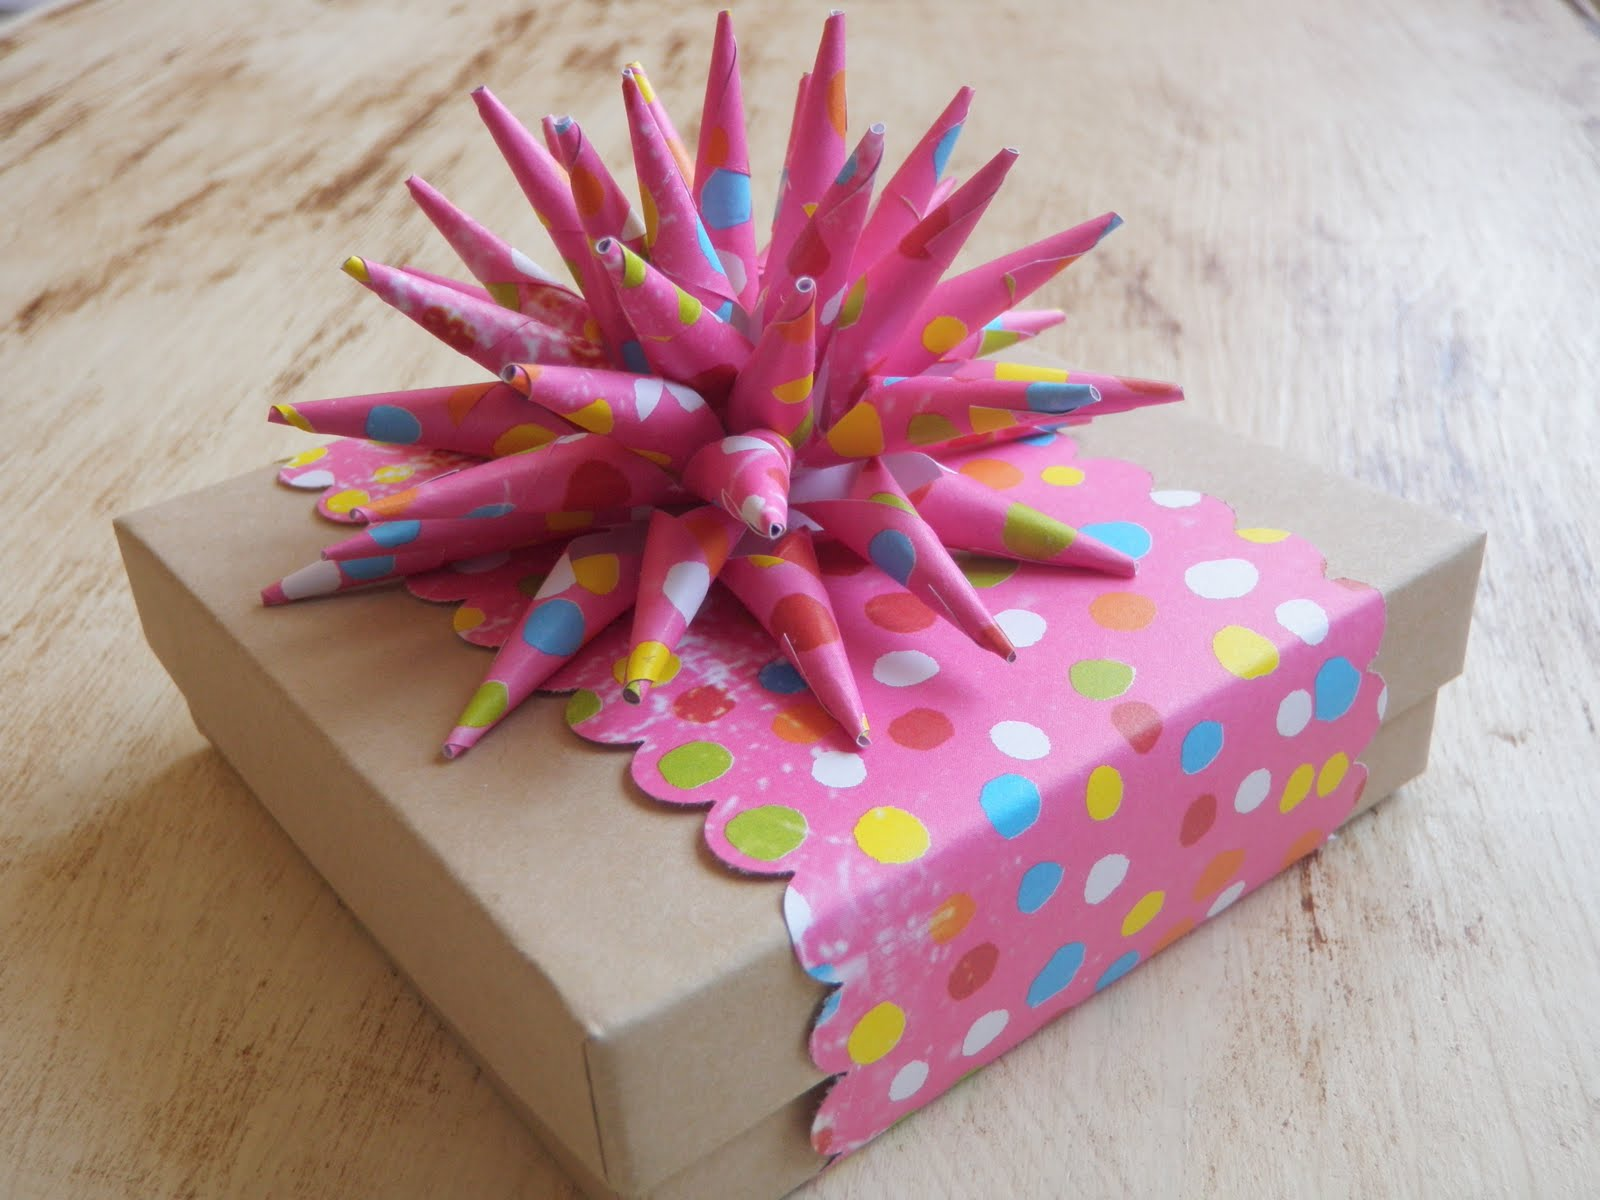 Handmade gifts wrap gift how to make a paper spike bow - Envolturas de regalos ...